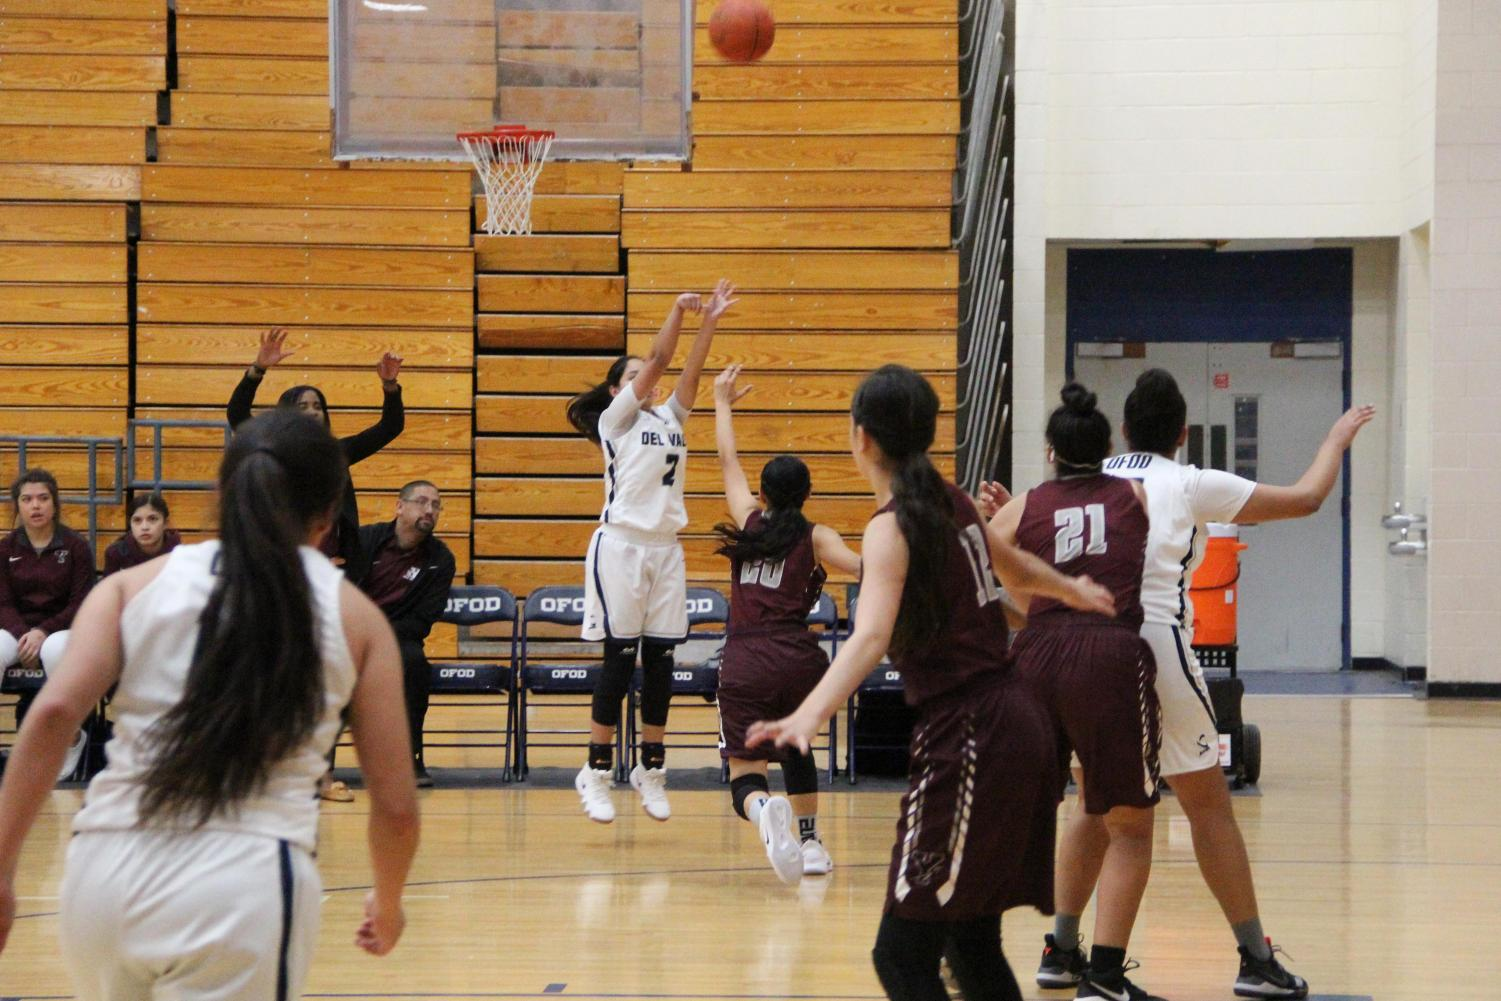 Point guard Adryan aims for the first shot of the game against Ysleta High School.